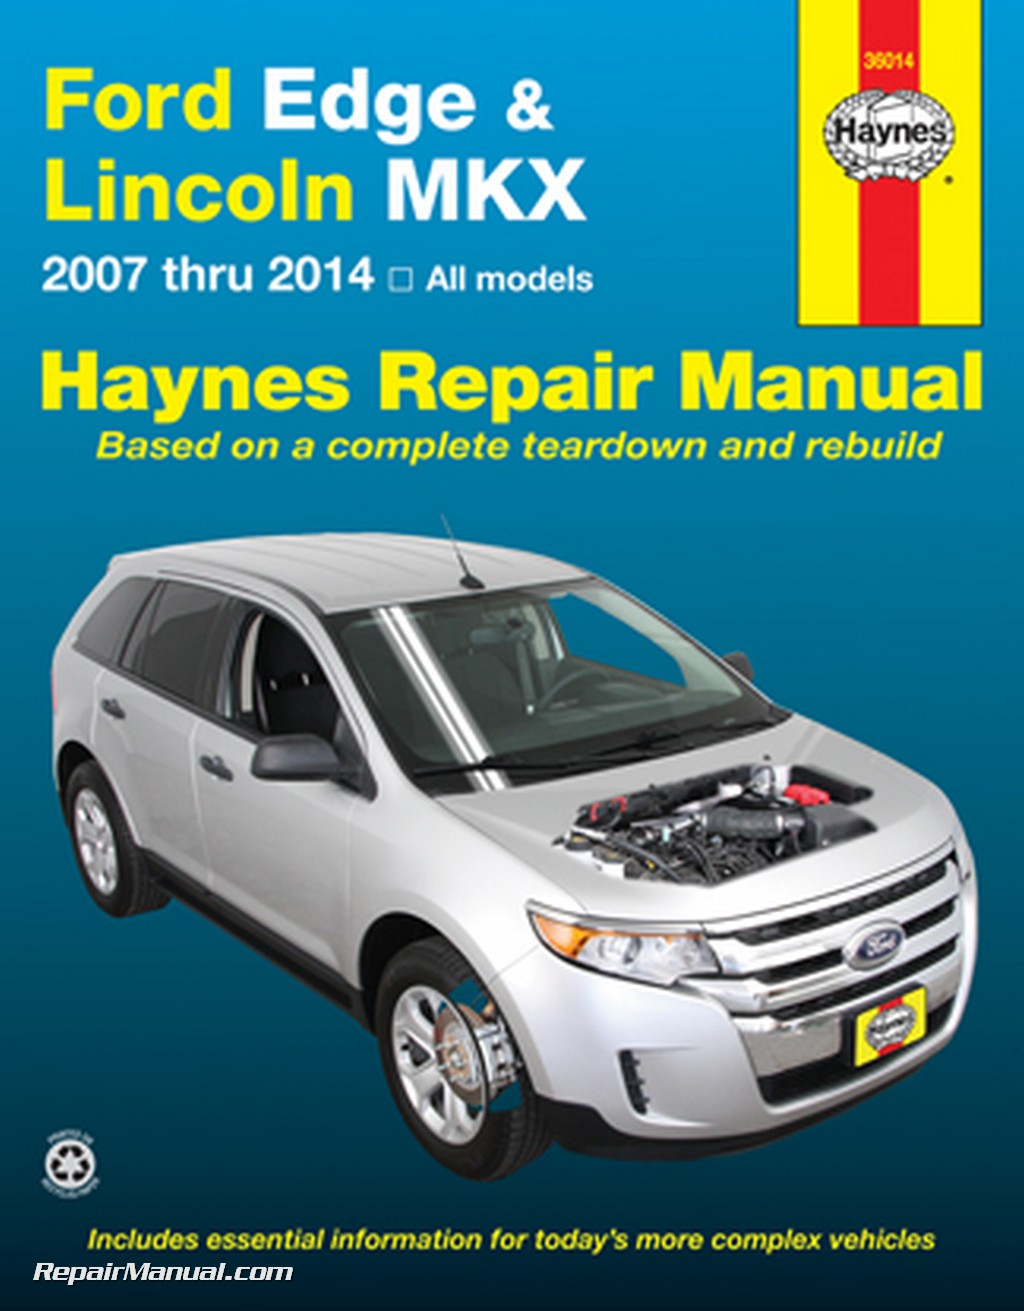 ford edge lincoln mkx haynes repair manual 2007 2014 hayne manual 2007 ford edge engine diagram 2007 ford edge engine diagram oil sensor